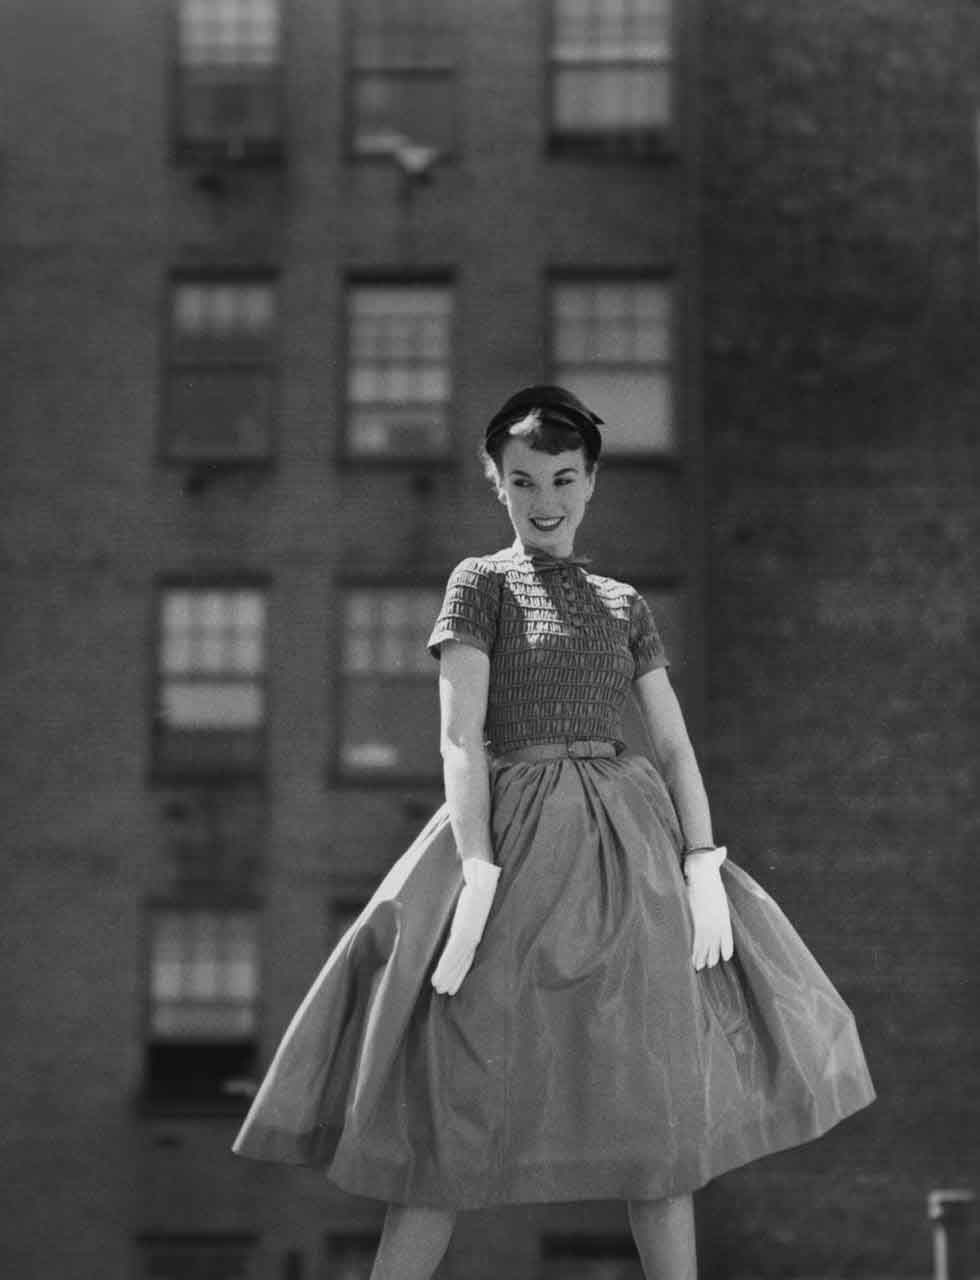 13_55_Model wearing a hat, full dress, and gloves posing on a roof_Dan Wynn Archive 1.jpg